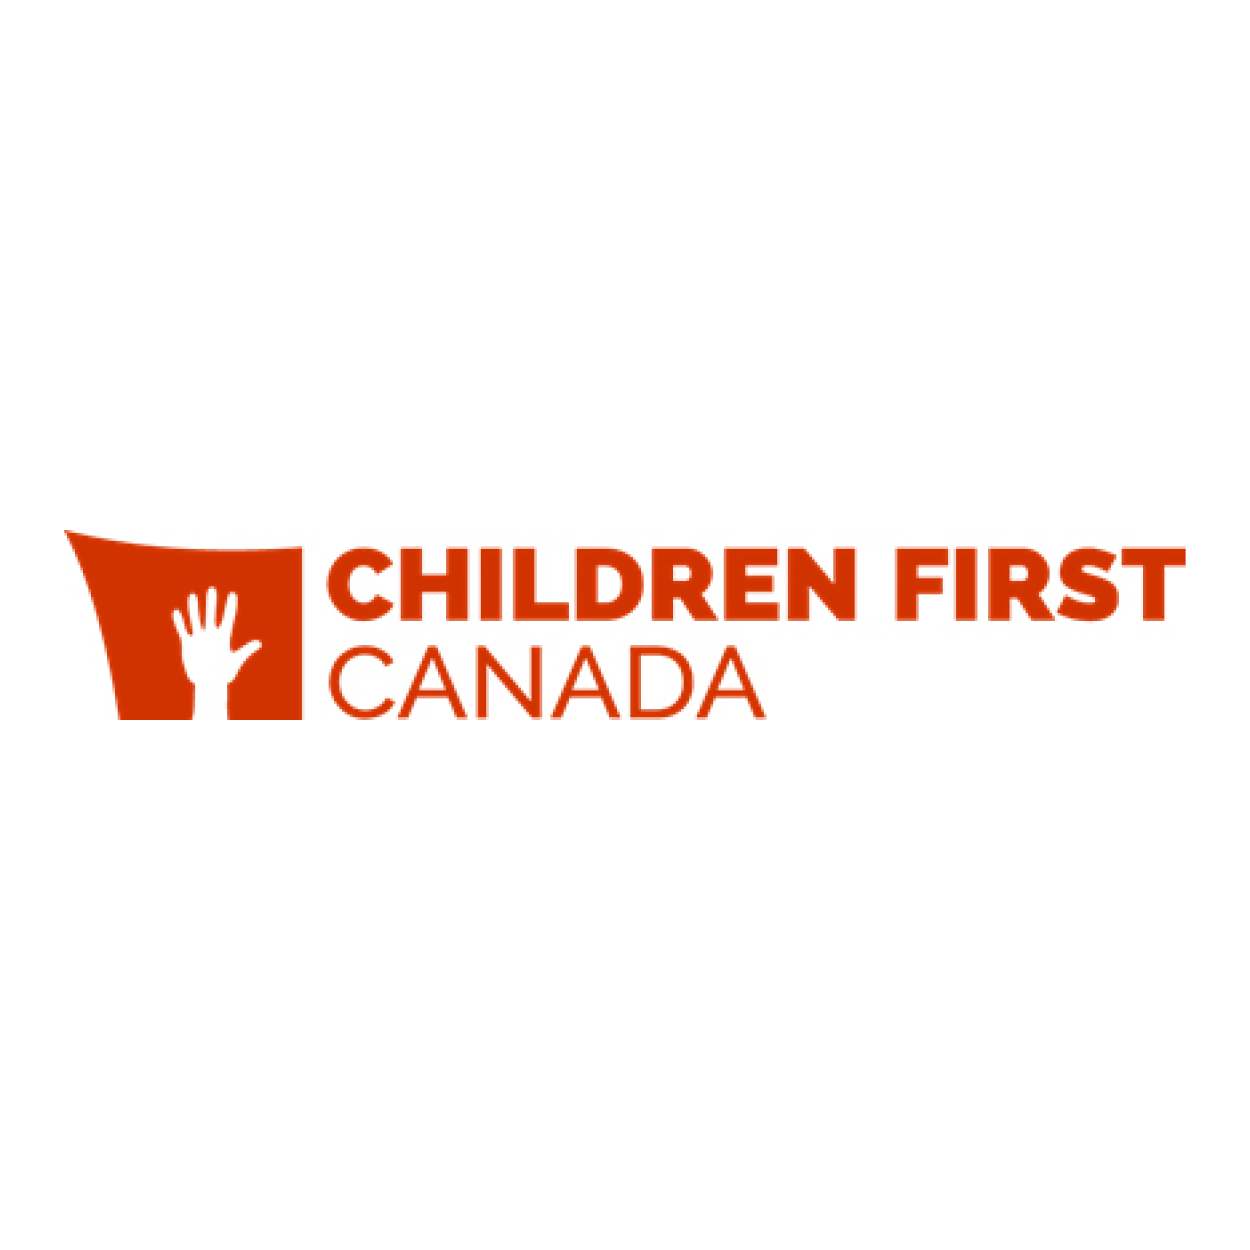 CHILDREN FIRST CANADA